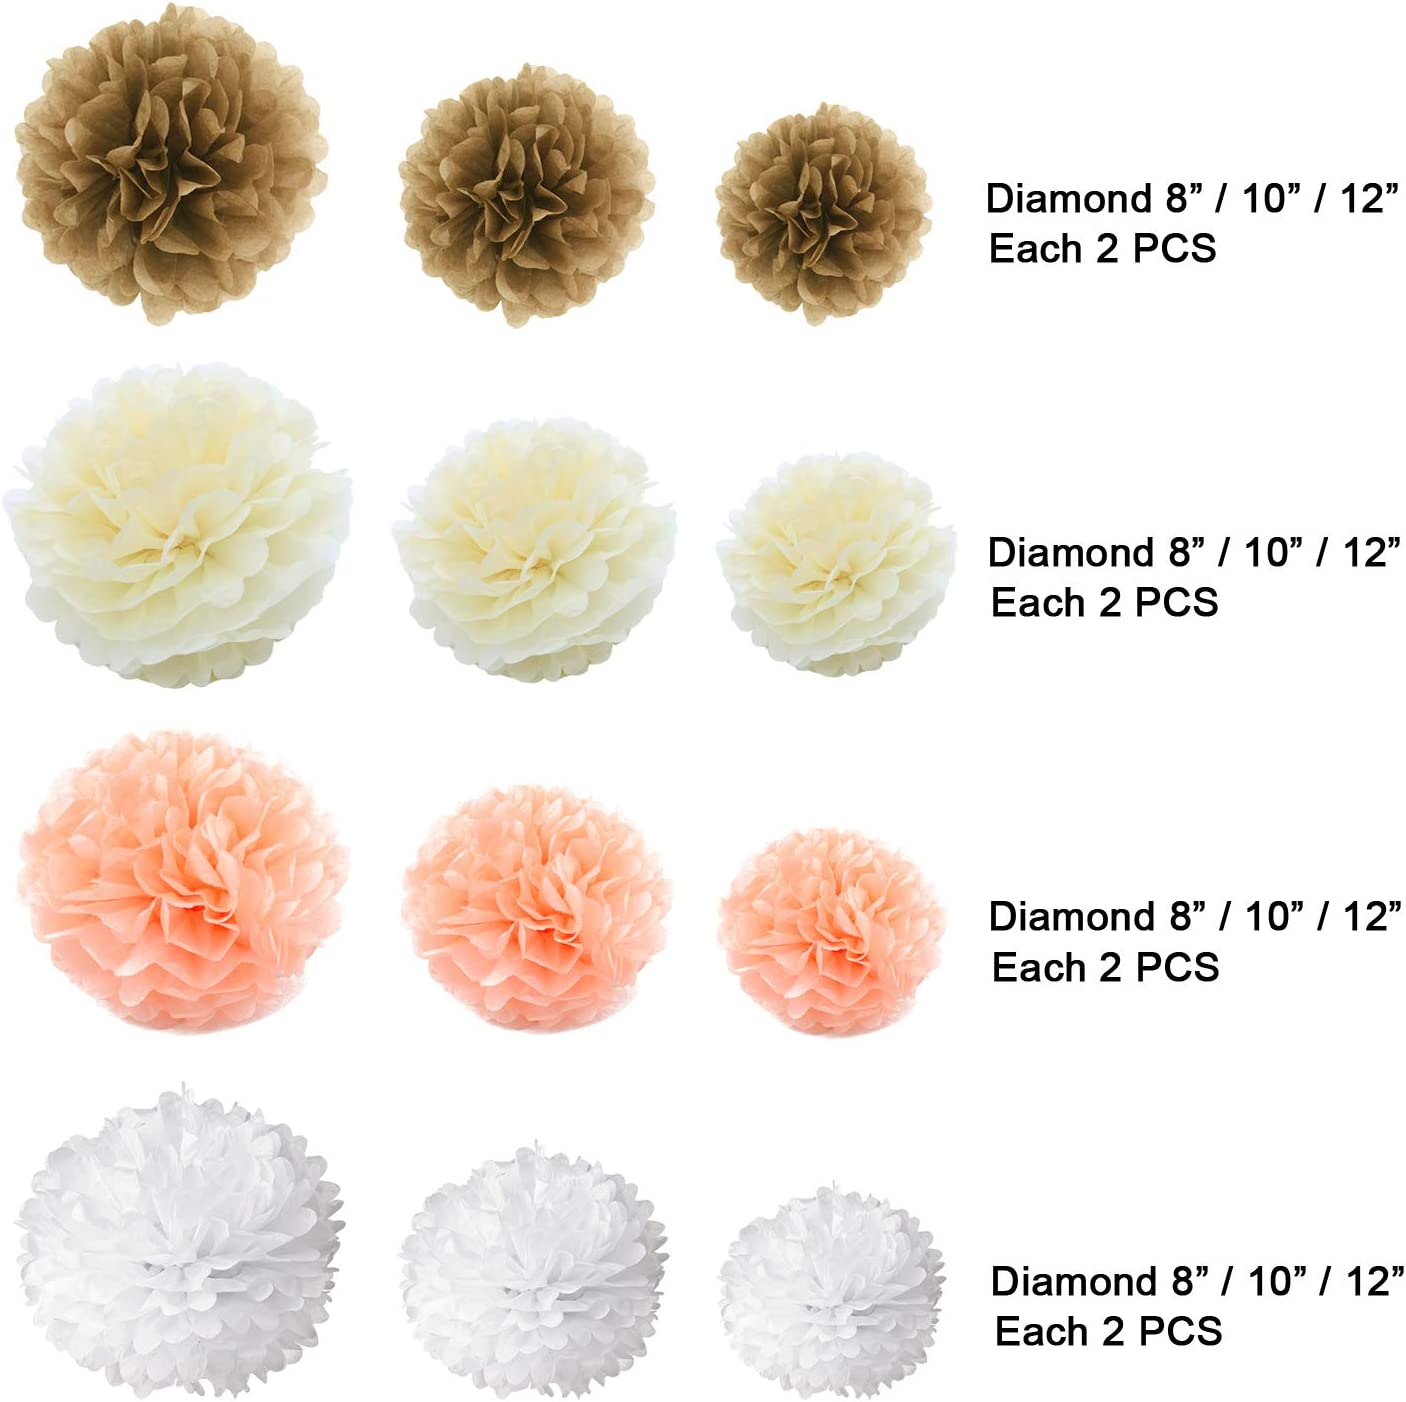 Champagne and Peach Mix 8,10,12 With 4 Colors Gold Fortune 24PCS Party Tissue Paper Pom Poms Kit Flower Ball for Wedding Birthday Baby Shower Bachelorette Nursery Decor and Party Outdoor Decora